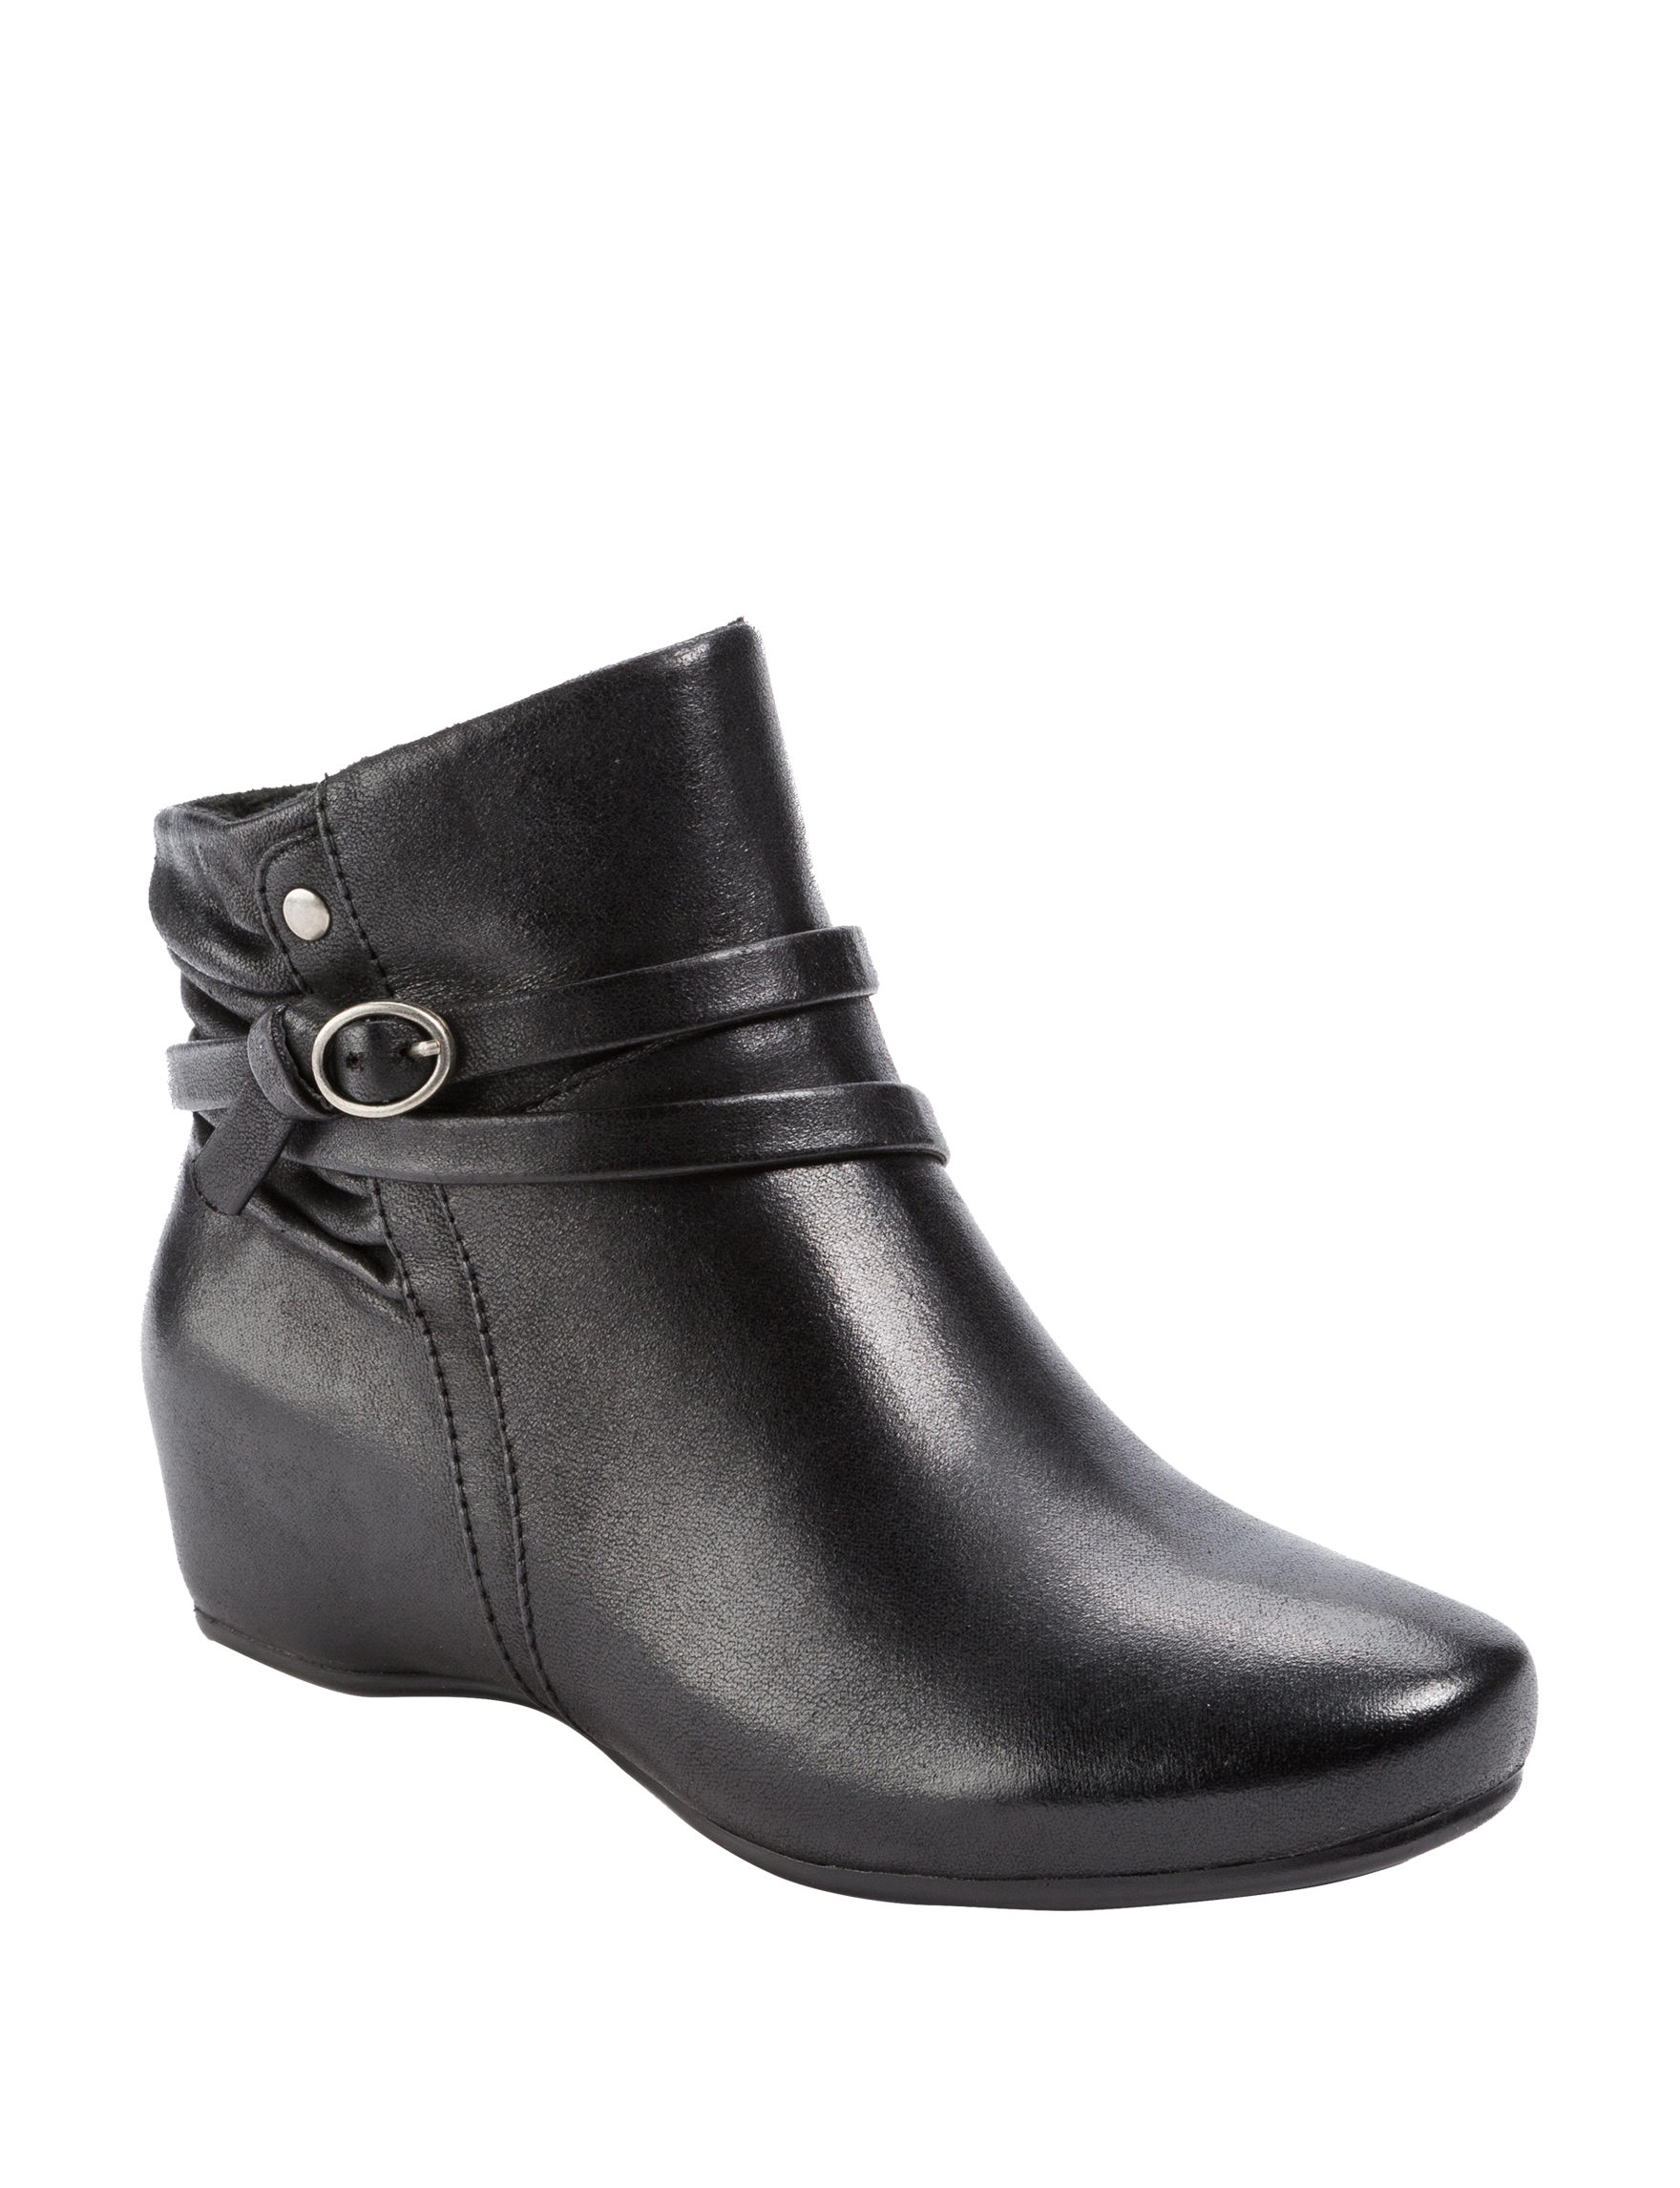 Baretraps Black Ankle Boots & Booties Comfort Shoes Wedge Boots